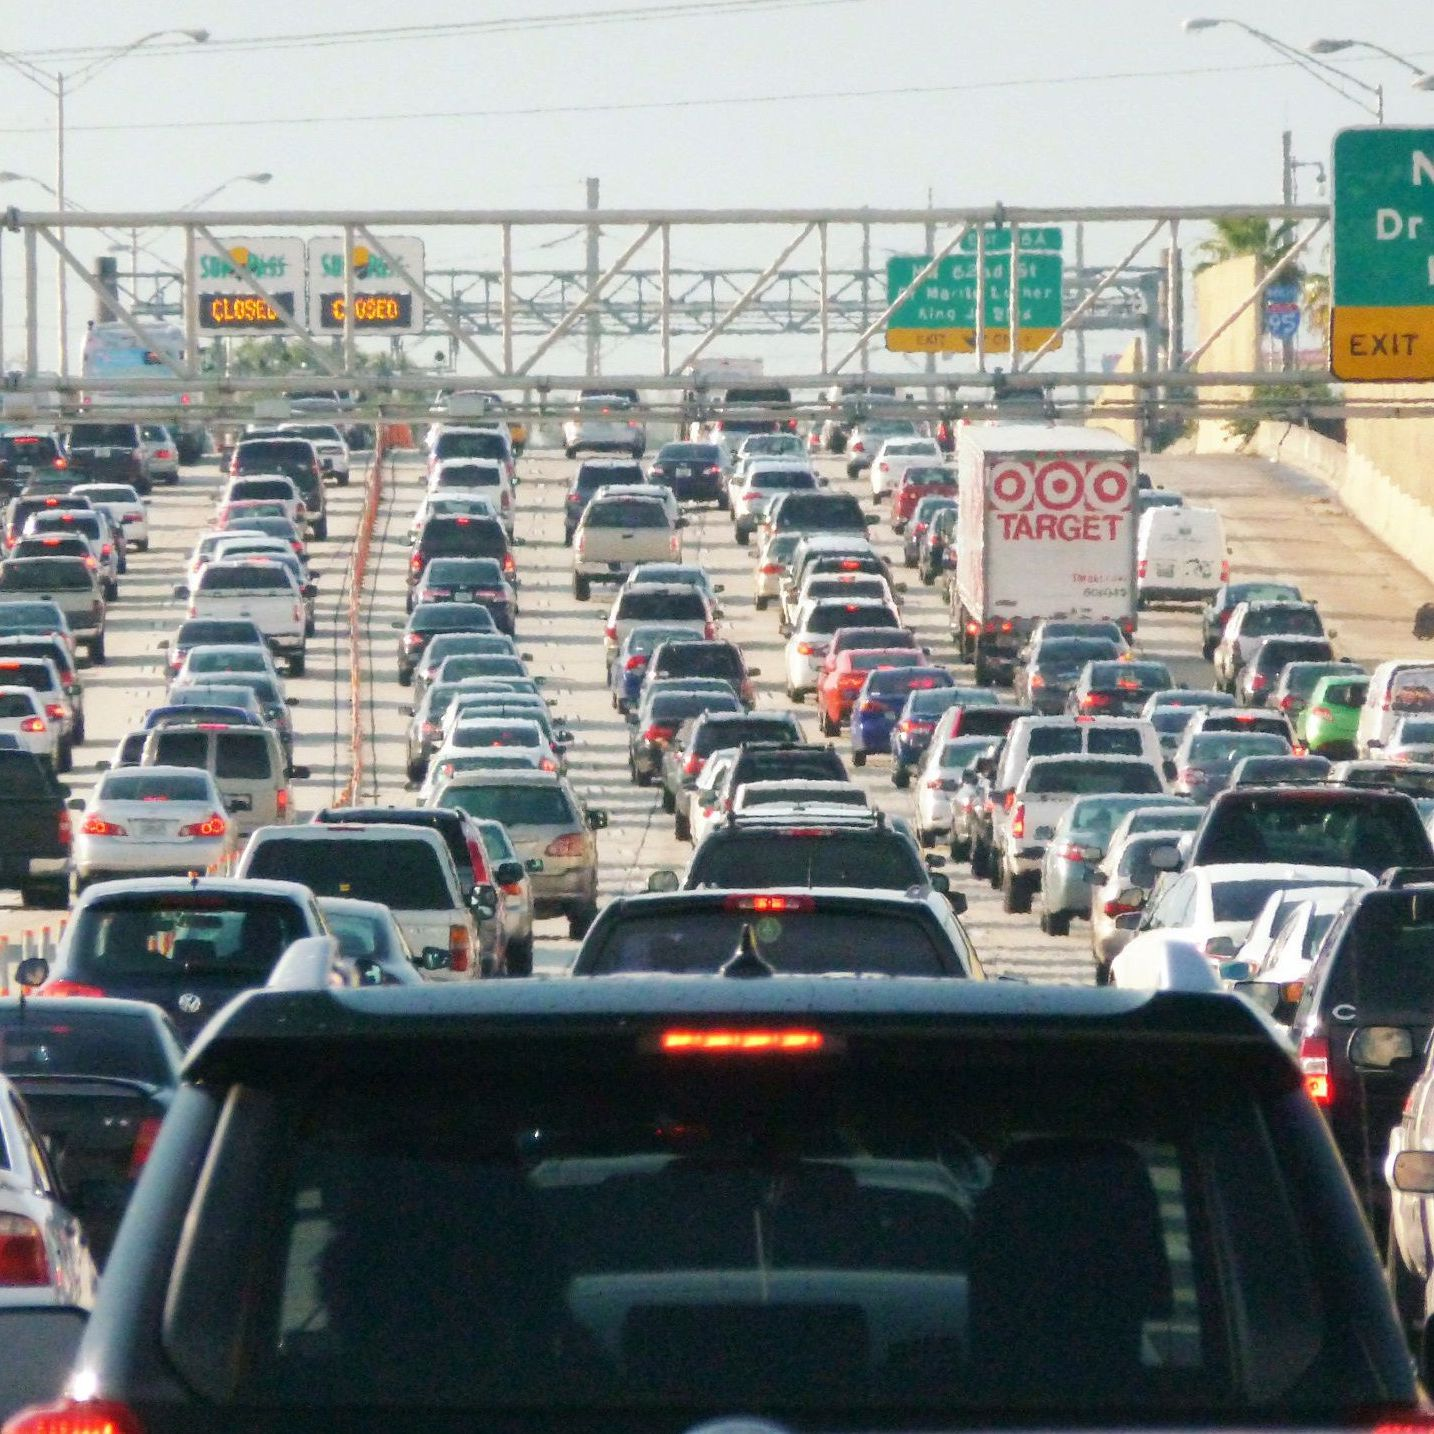 Google Traffic Can Steer You Out Of A Jam